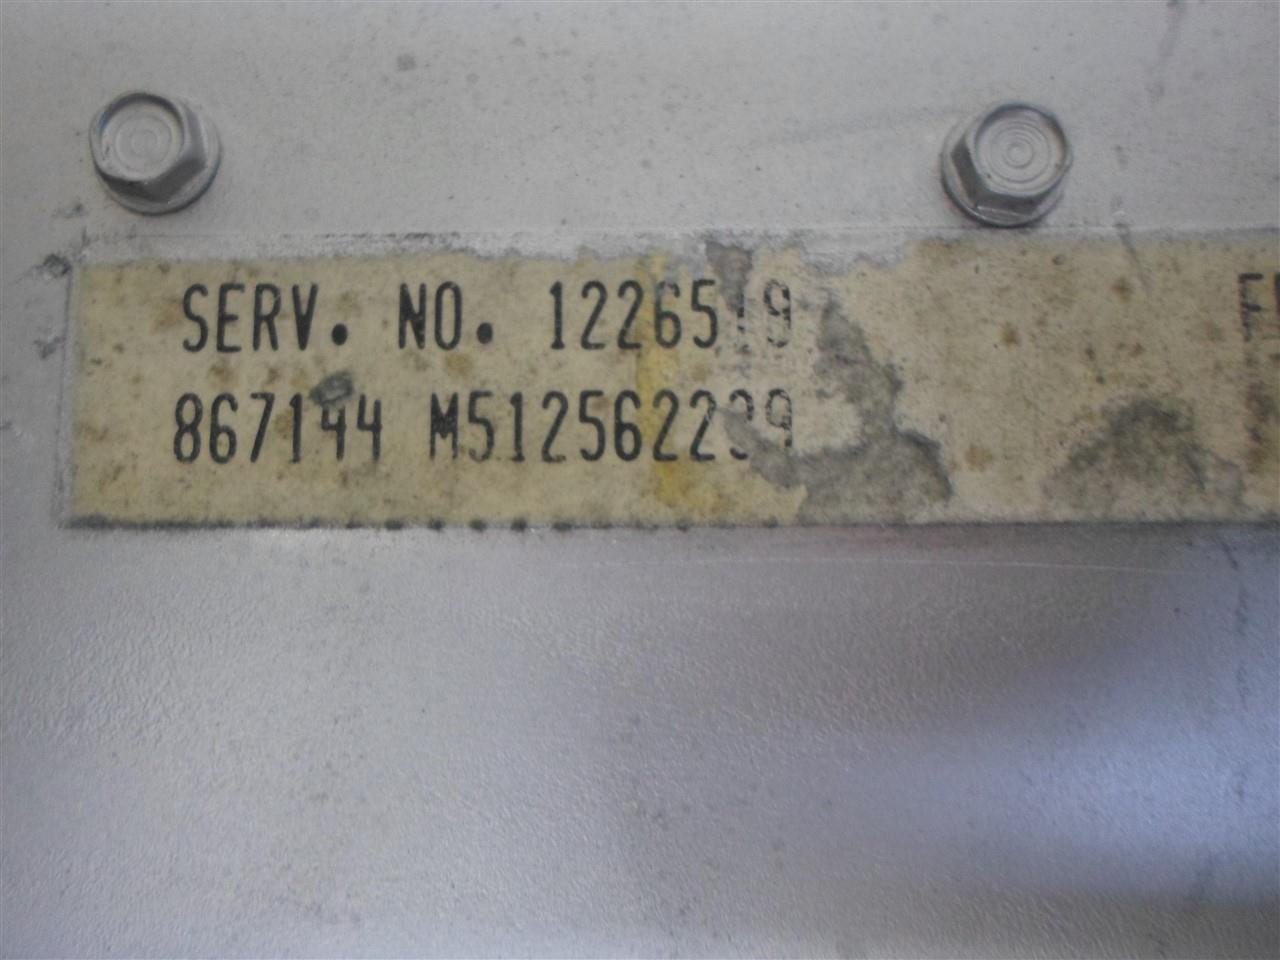 1984-1987 Olds Cutlass Buick Regal ecm ecu computer 1226519